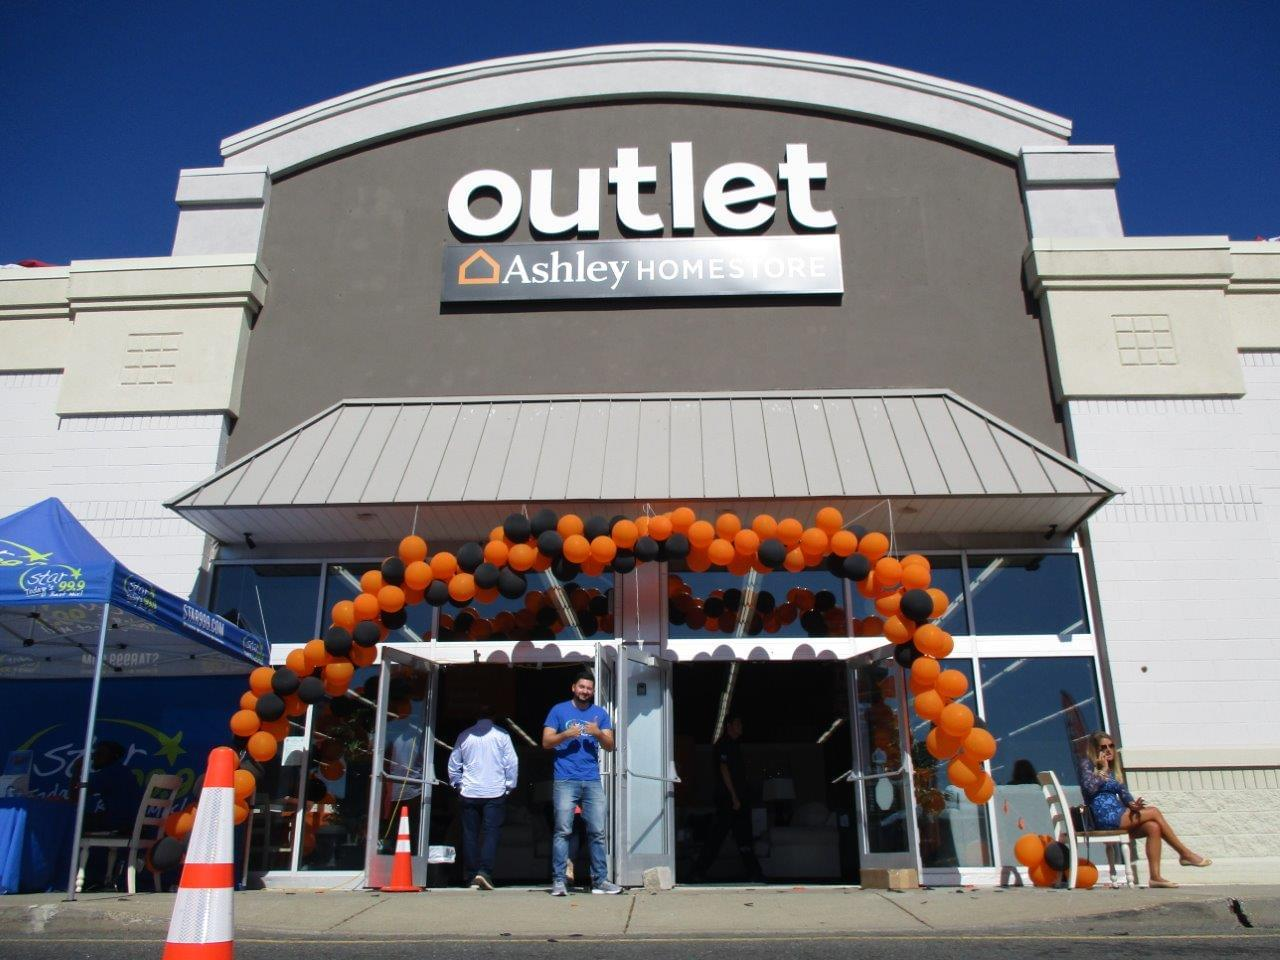 Ashley Homestore Outlet Grand Opening 9/27/19